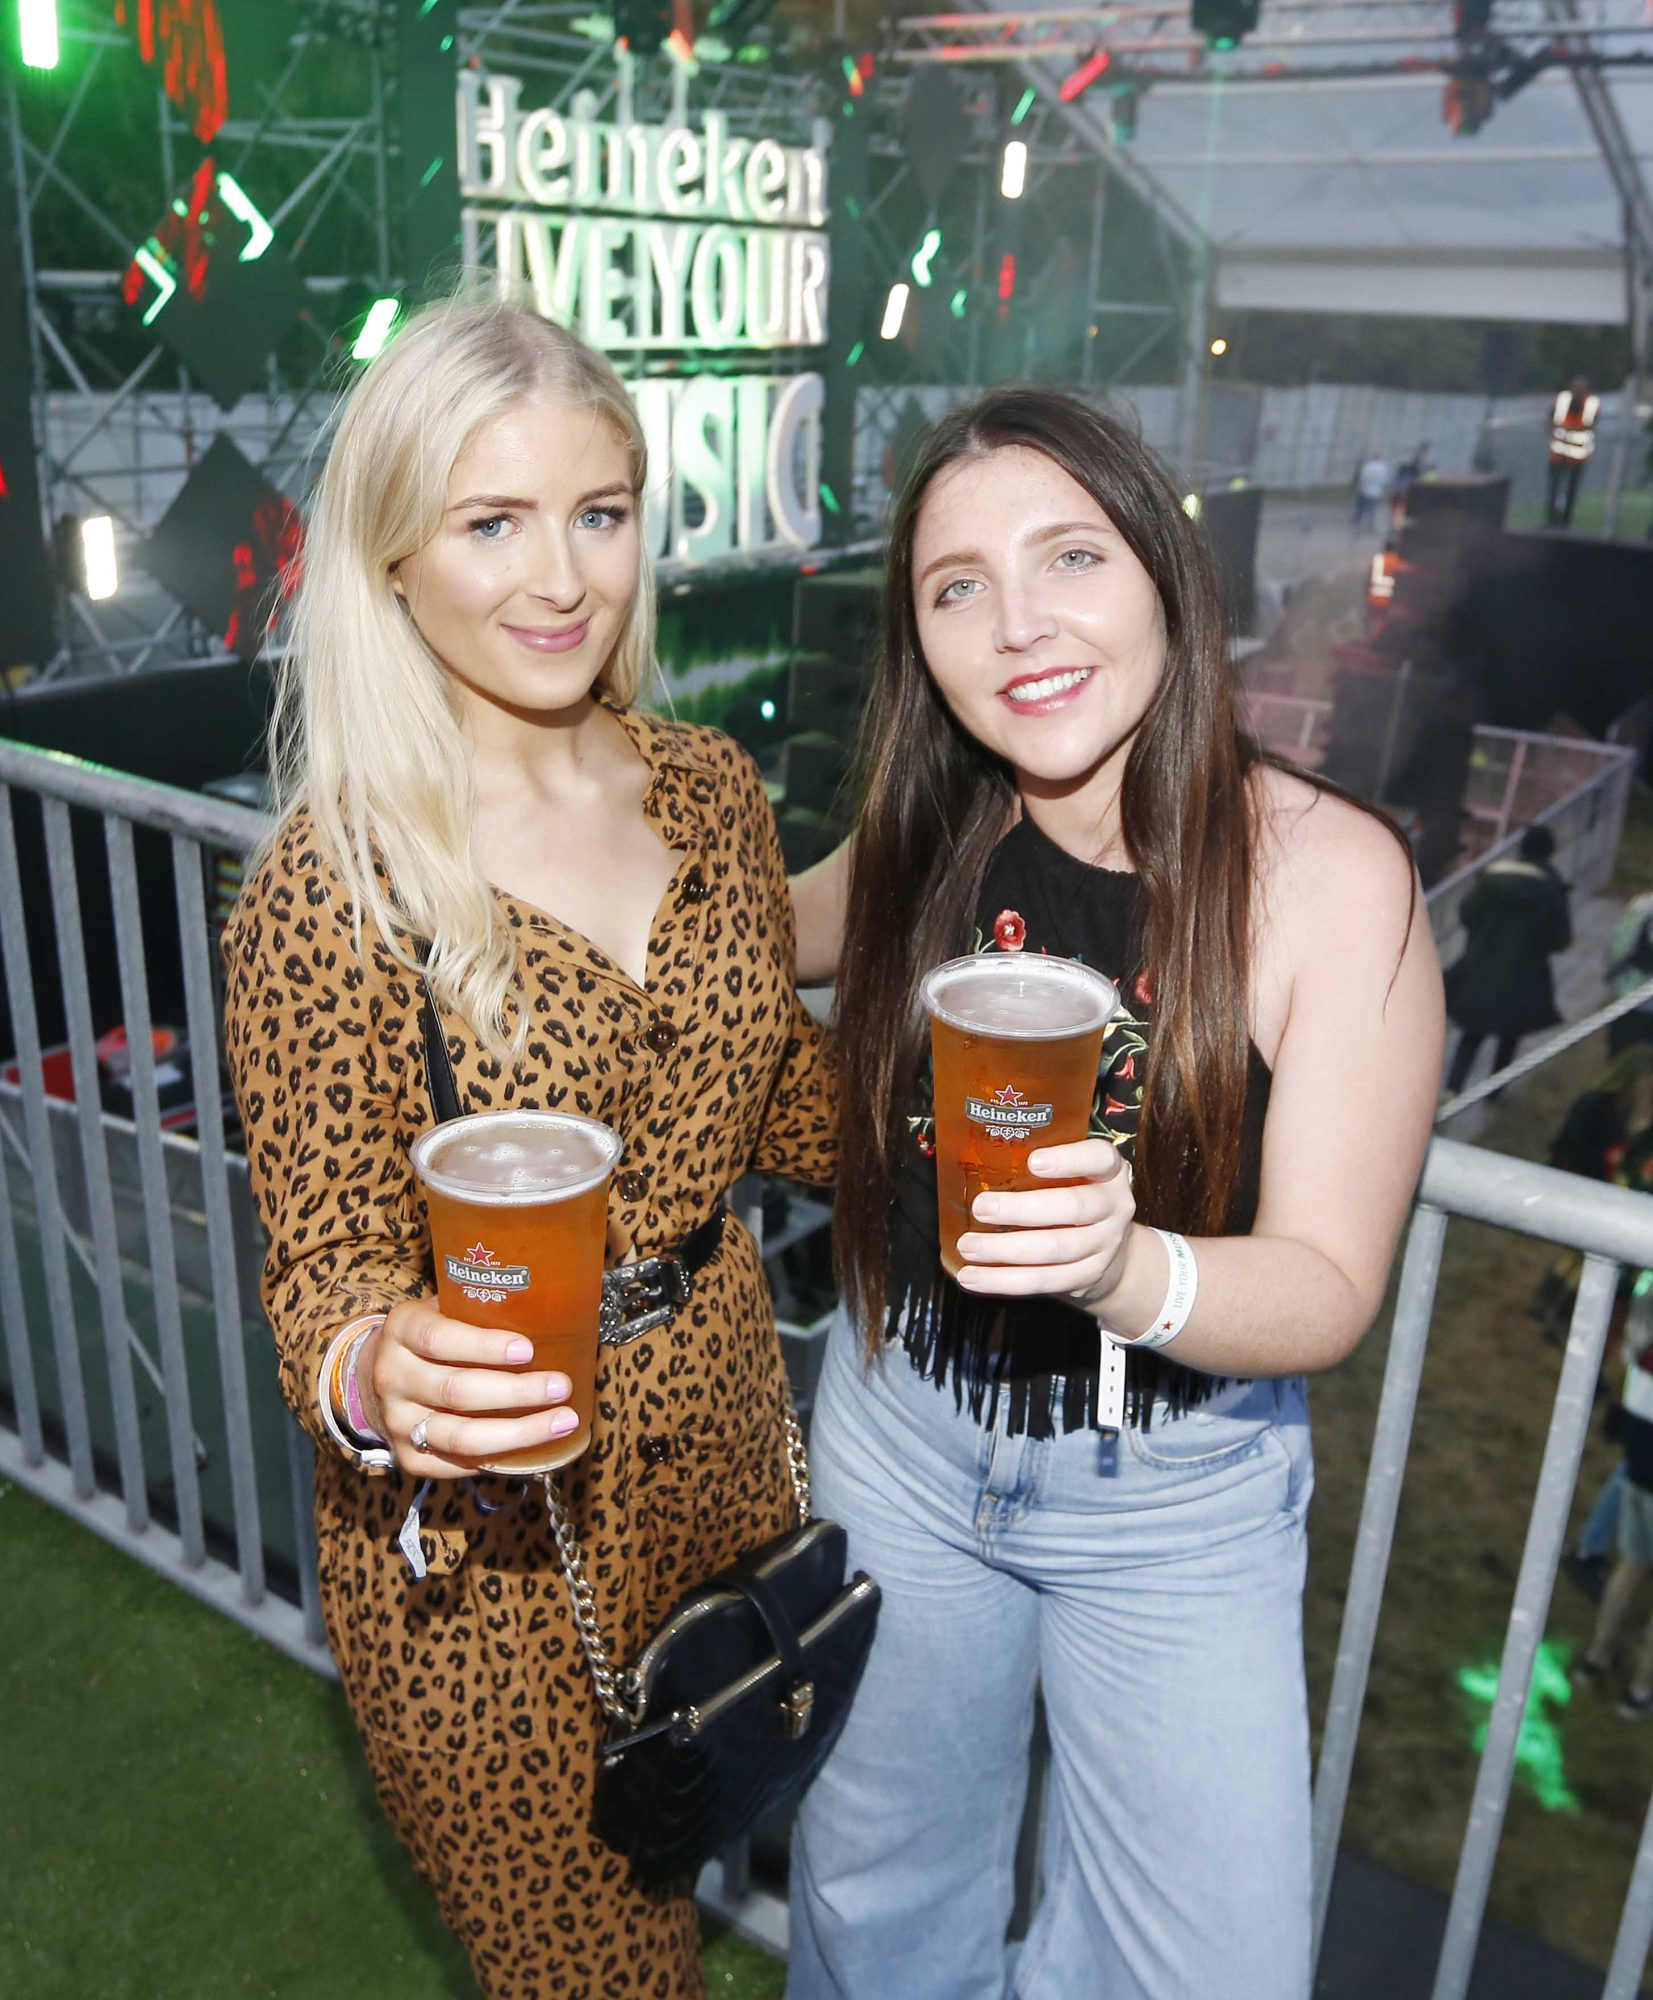 NO REPRO FEE 30/08/2019 Heineken Live Your Music Stage at Electric Picnic 2019. Pictured are (LtoR) Hannah Murphy and Fiona Hughes at the Heineken Live Your Music Stage at Electric Picnic 2019. This year's area is an enormous structure on two levels, with a glass roof that will keep festival-goers dry but let them dance beneath the sun and stars! The immersive and interactive lightshow has been reimagined for 2019 which, combined with the state-of-the-art soundsystem, make Live Your Music the most impressive festival stage in the country. Photo: Sasko Lazarov/Phorocall Ireland